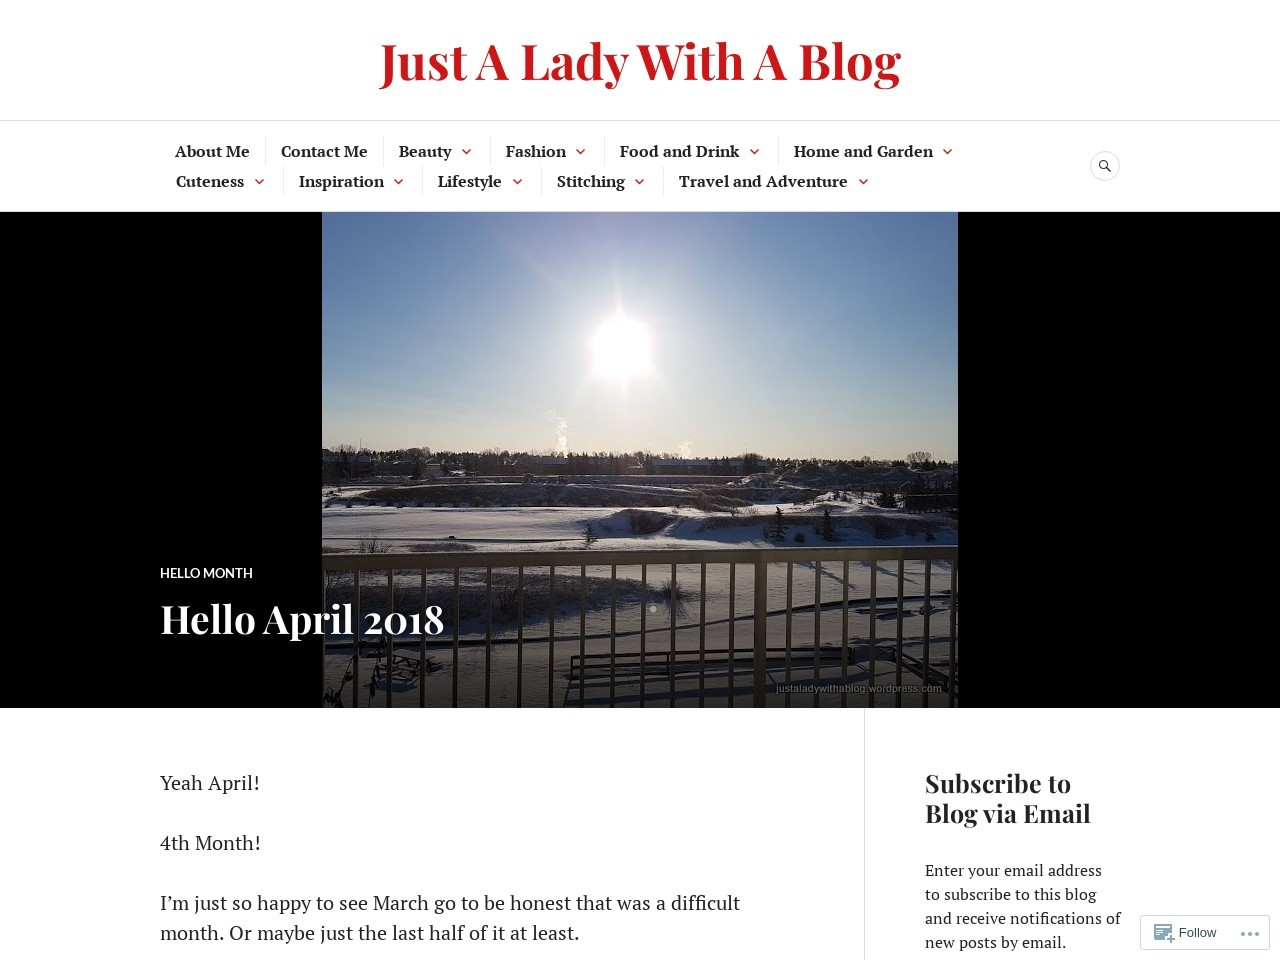 Hello April 2018 – Just A Lady With A Blog